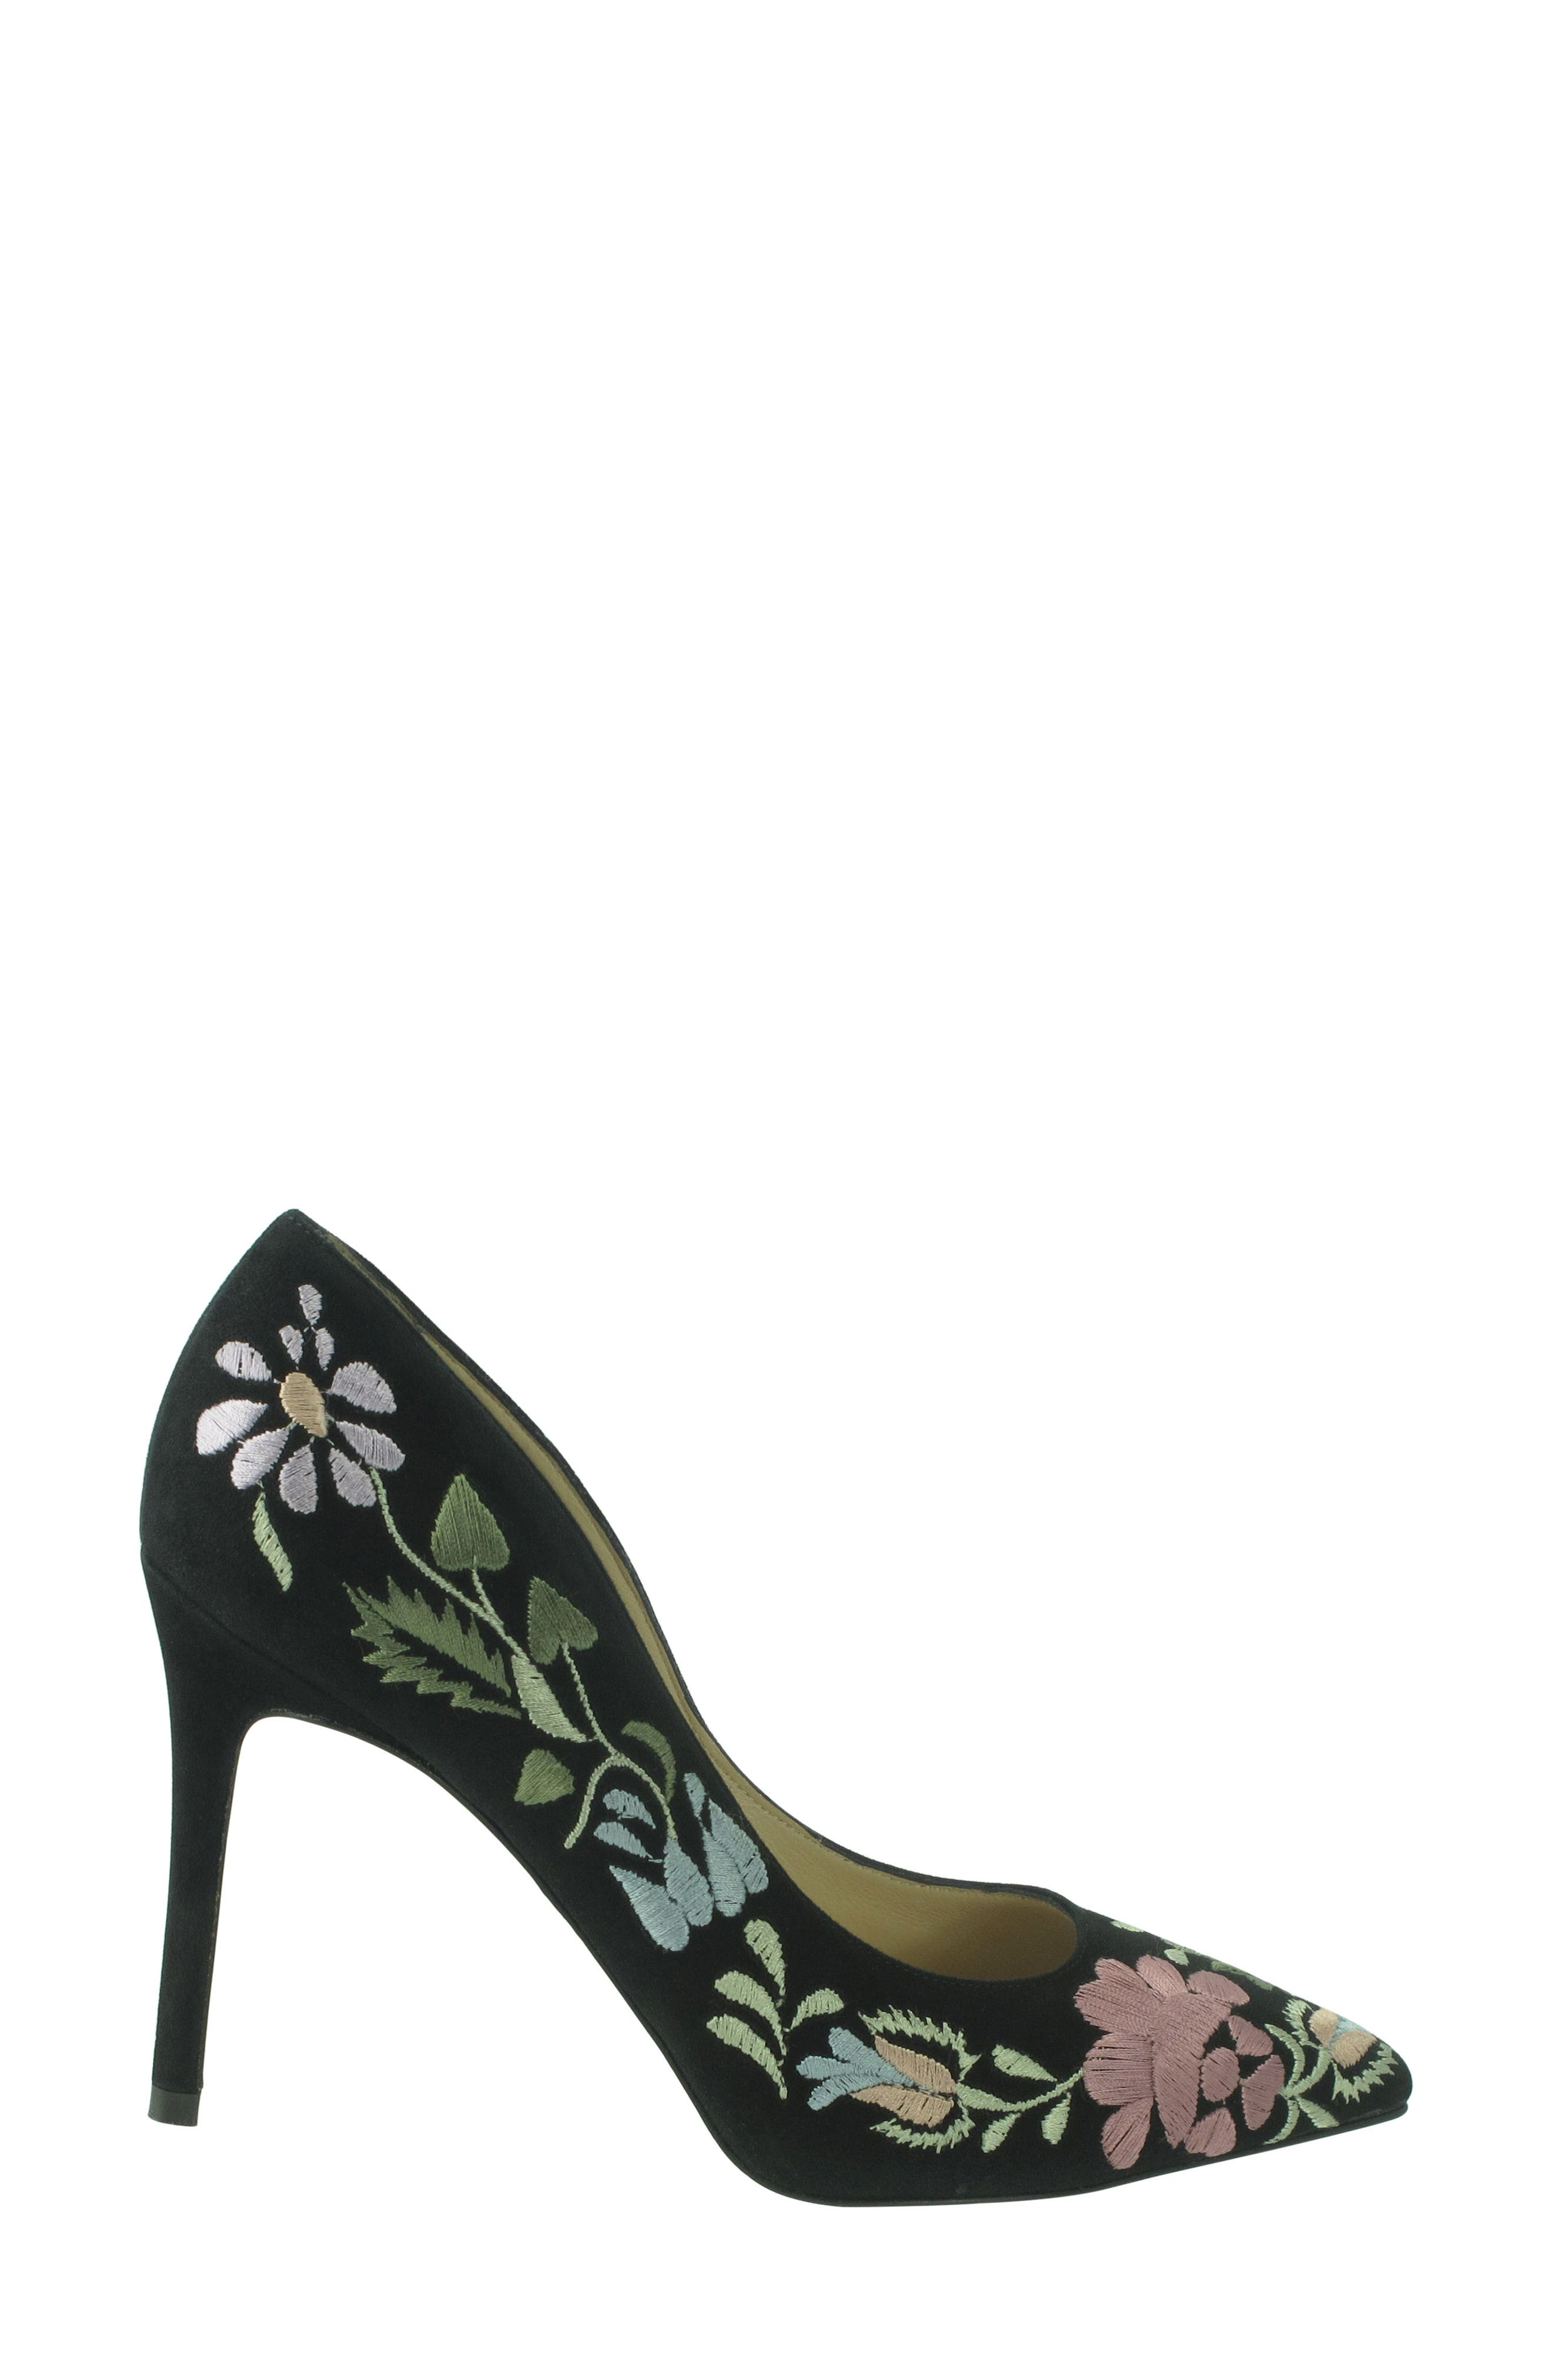 Shana Flower Embroidered Pump,                             Alternate thumbnail 4, color,                             Onyx Multi Suede